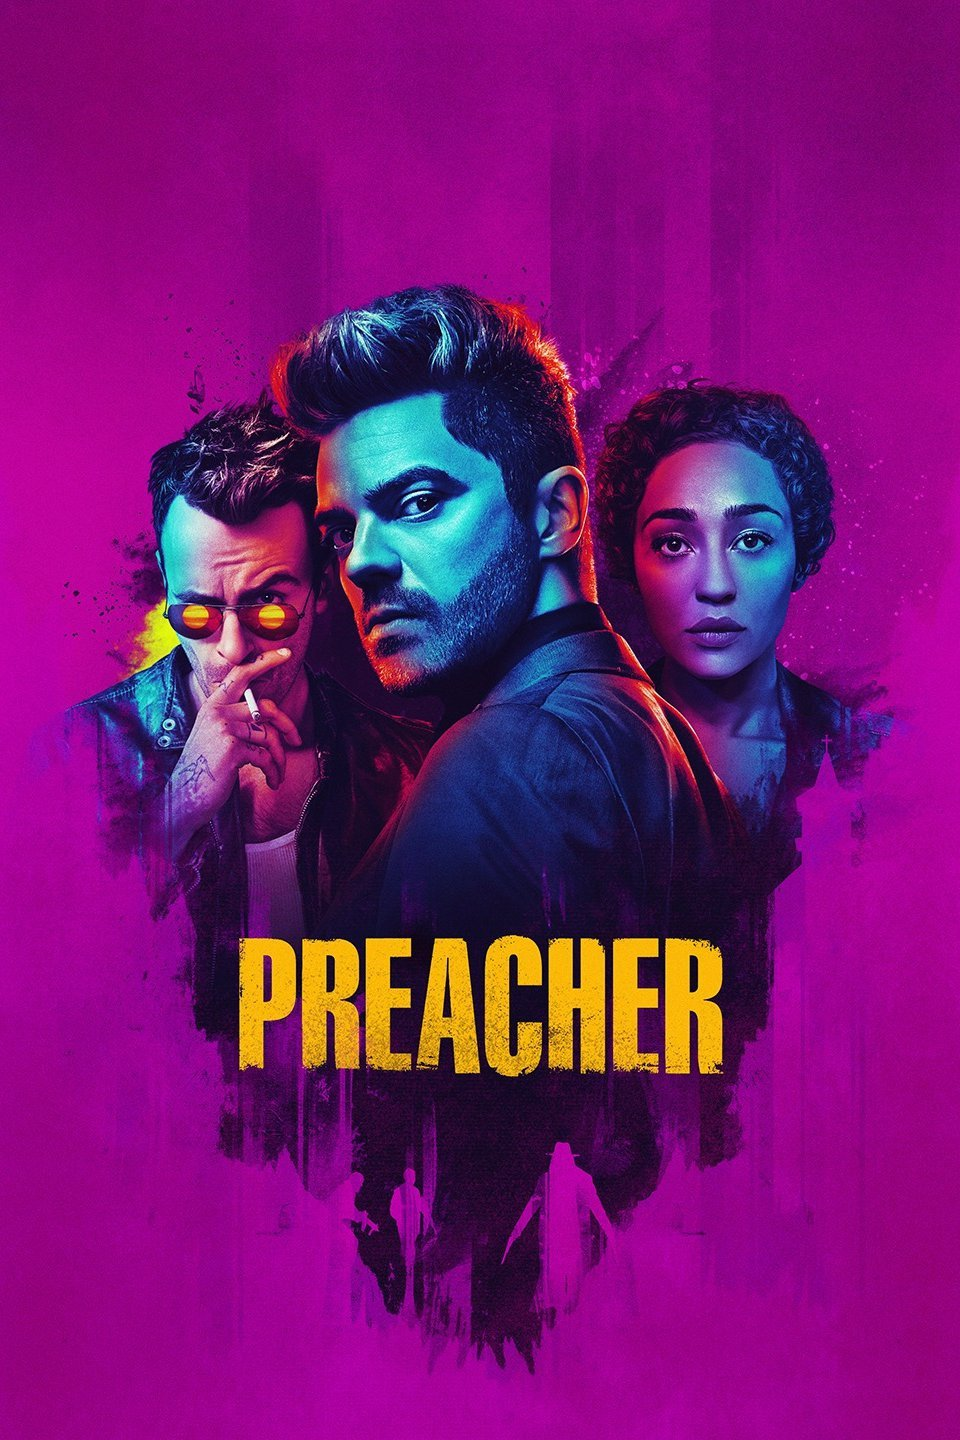 Preacher Season 3 Episode 6 Download HDTV 480p 720p